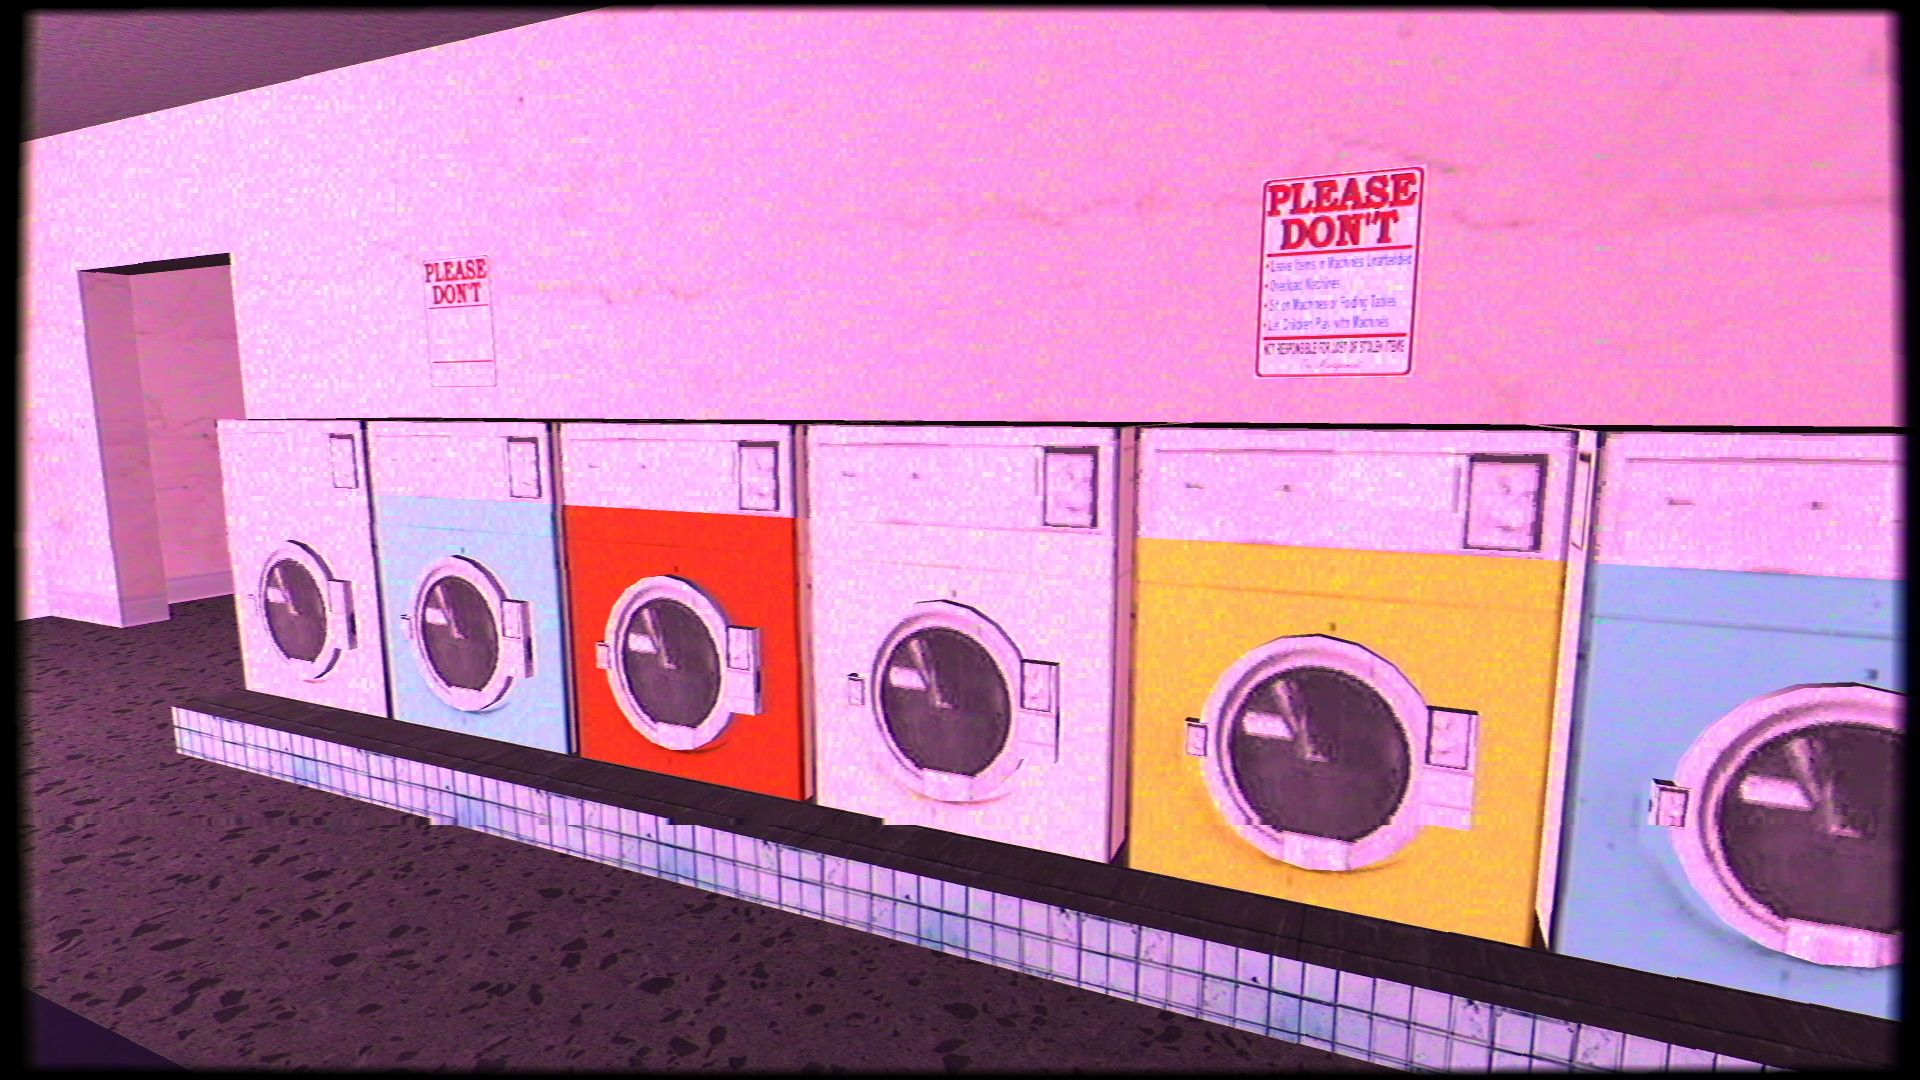 A row of washing machines in a laundromat